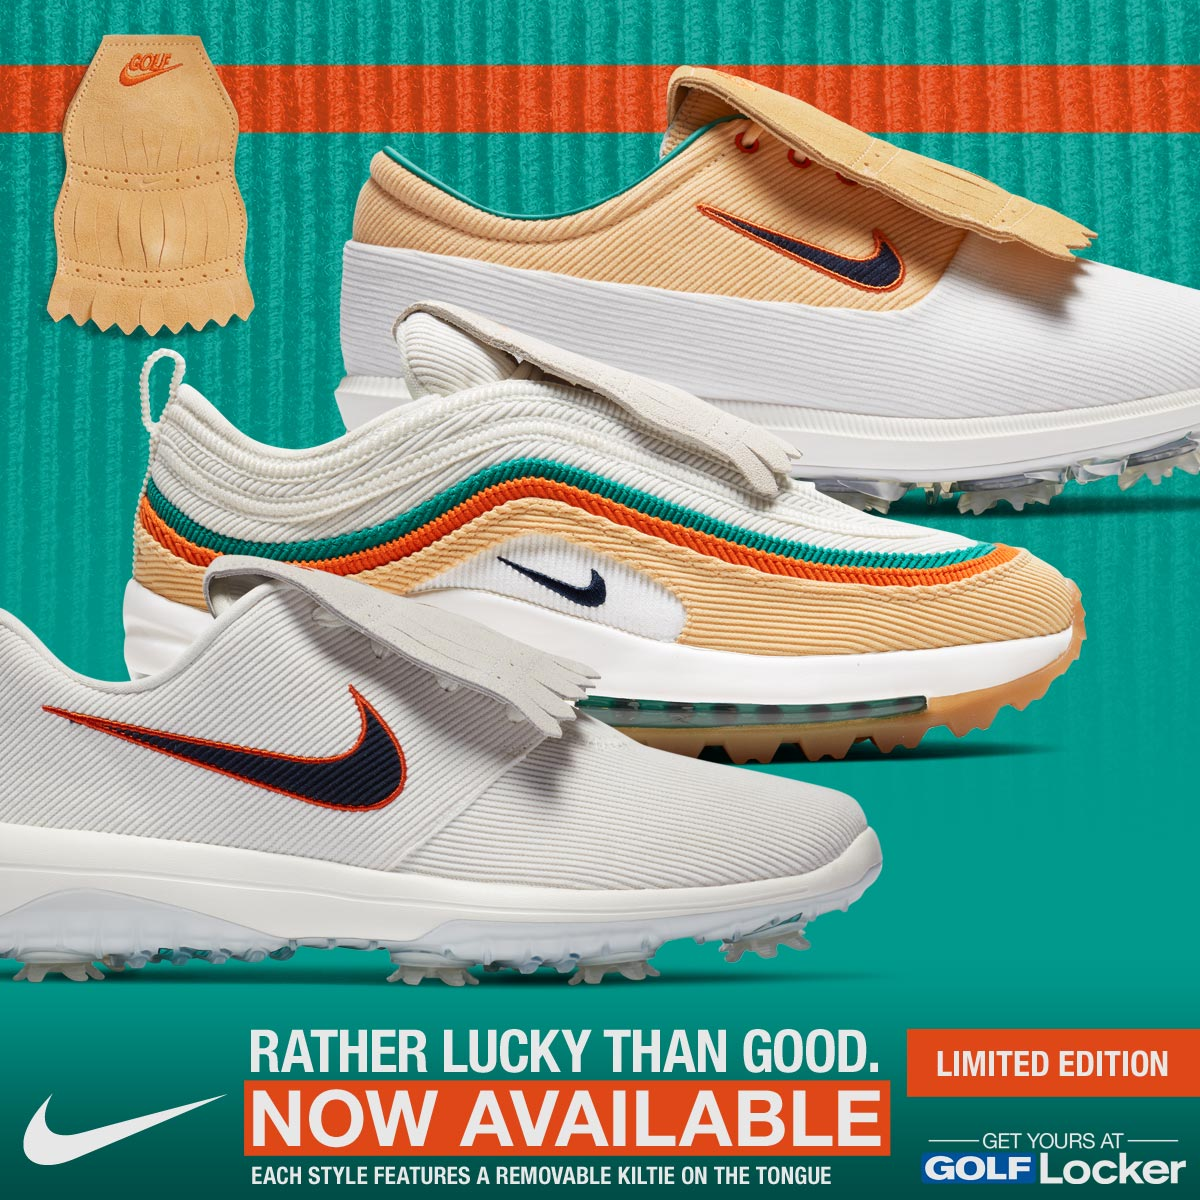 Now Available - Rather Lucky Than Good - Limited Edition Nike Shoes